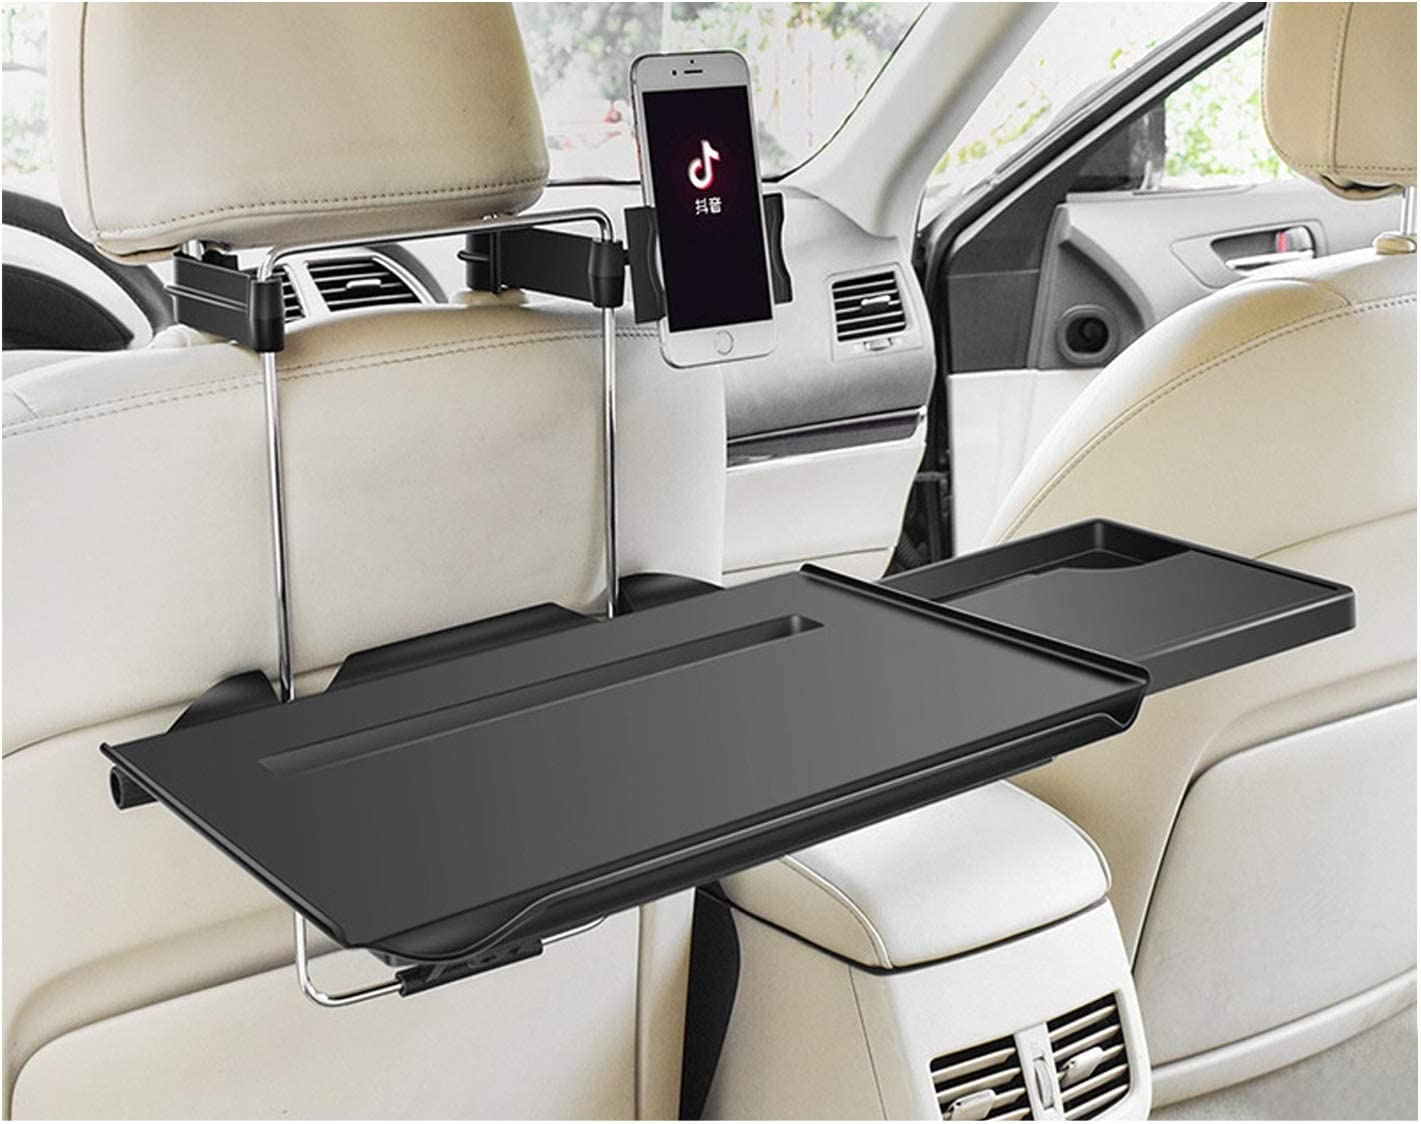 Portable Hanging Laptop Trays Car Backseat Organizer Car Laptop Desk Car Vehicle Seat Portable Mount Tray Laptop Notebook Table Foldable Car Dining Food Drink Desk Cup Holder (1)